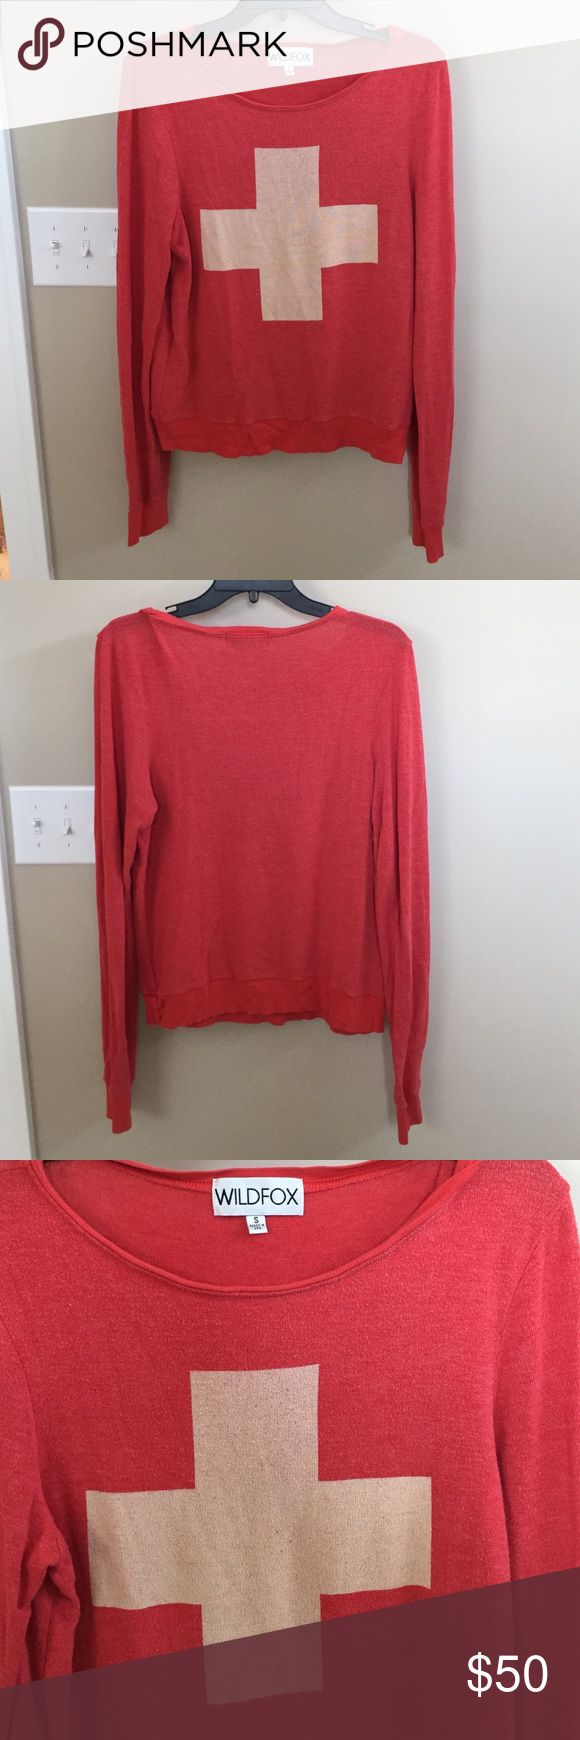 Wildfox Lifeguard Beach Baggy Jumper Red and off white lifeguard sweater. Great condition, slight pilling like all beach baggy jumpers after a couple of washes. Worn about 5-7 times. Wildfox Sweaters